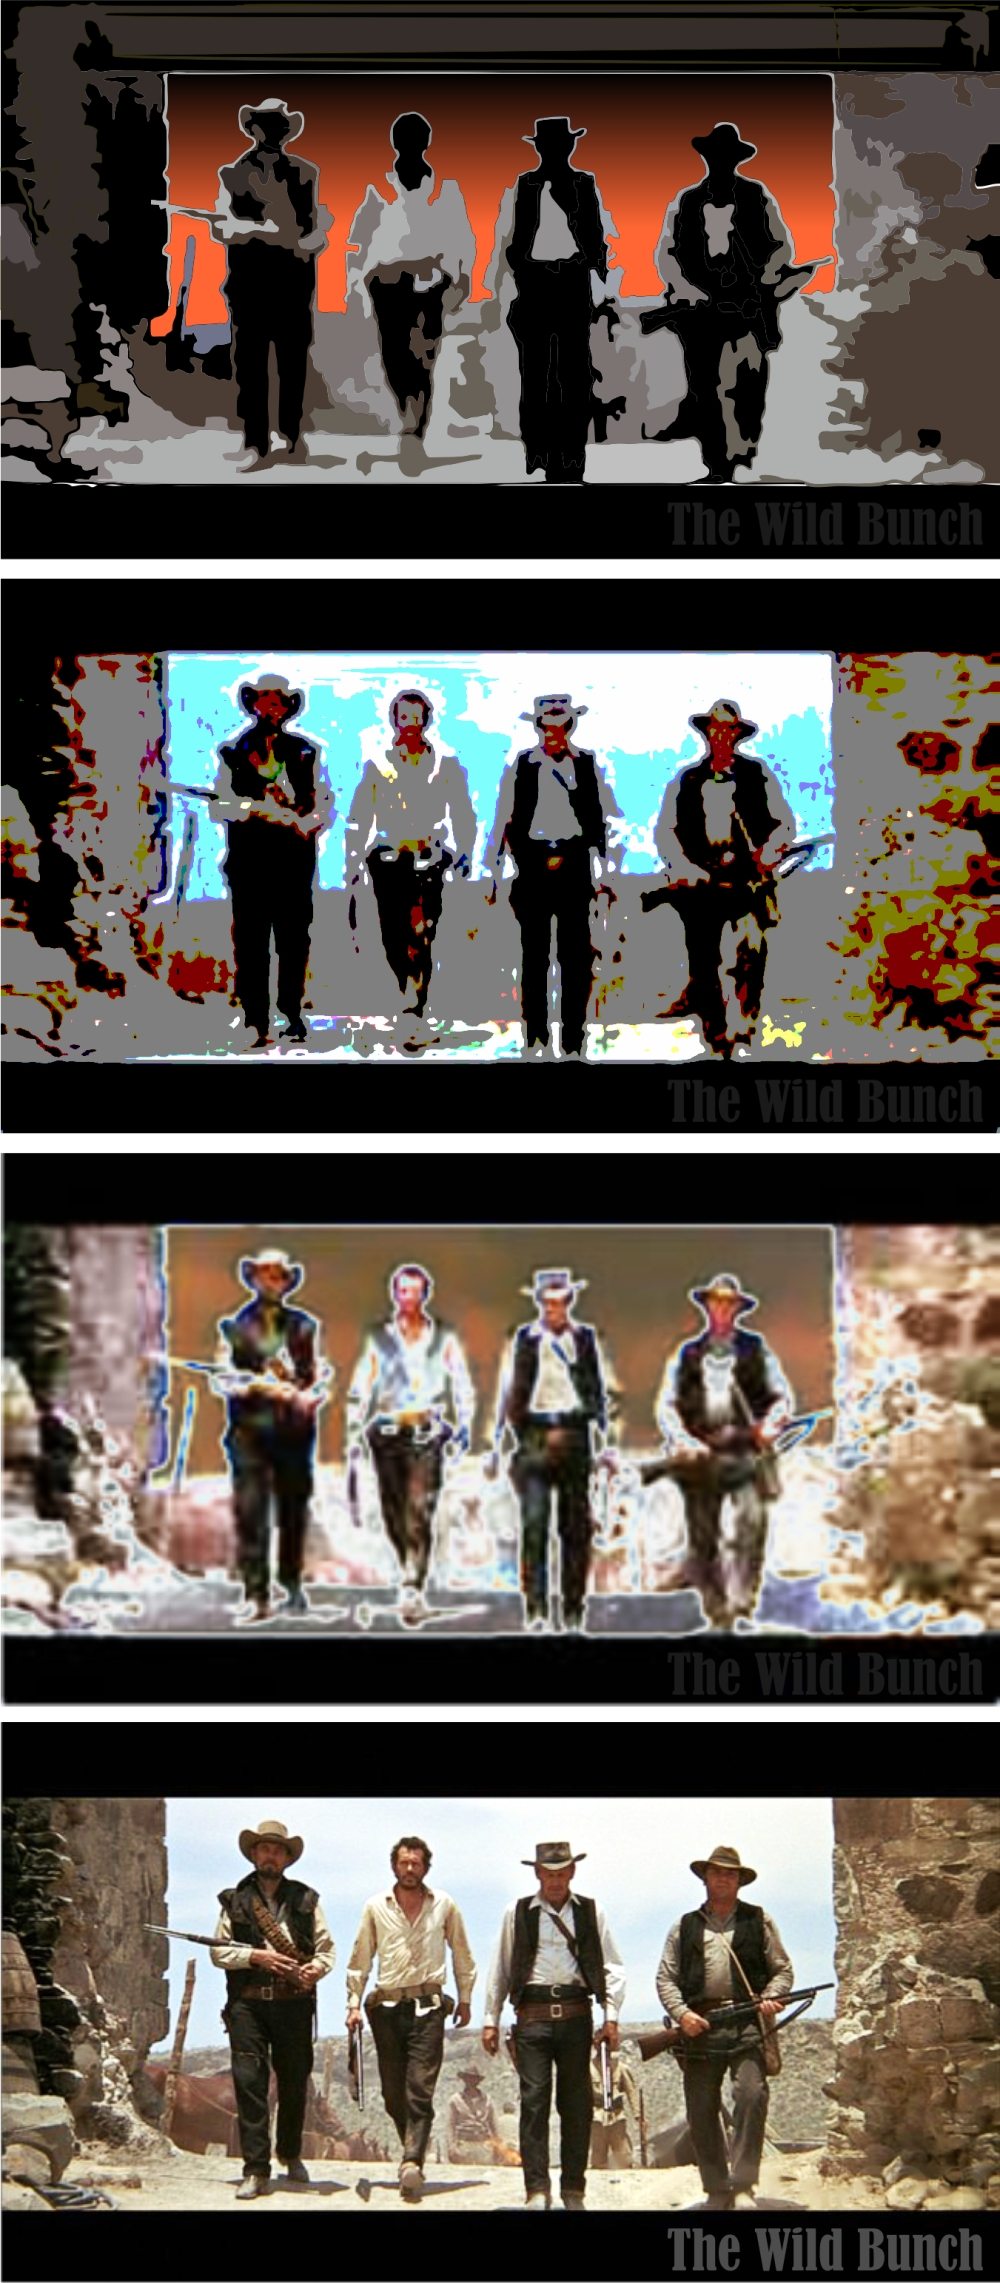 COWBOYS IN THE MIST - the wild bunch